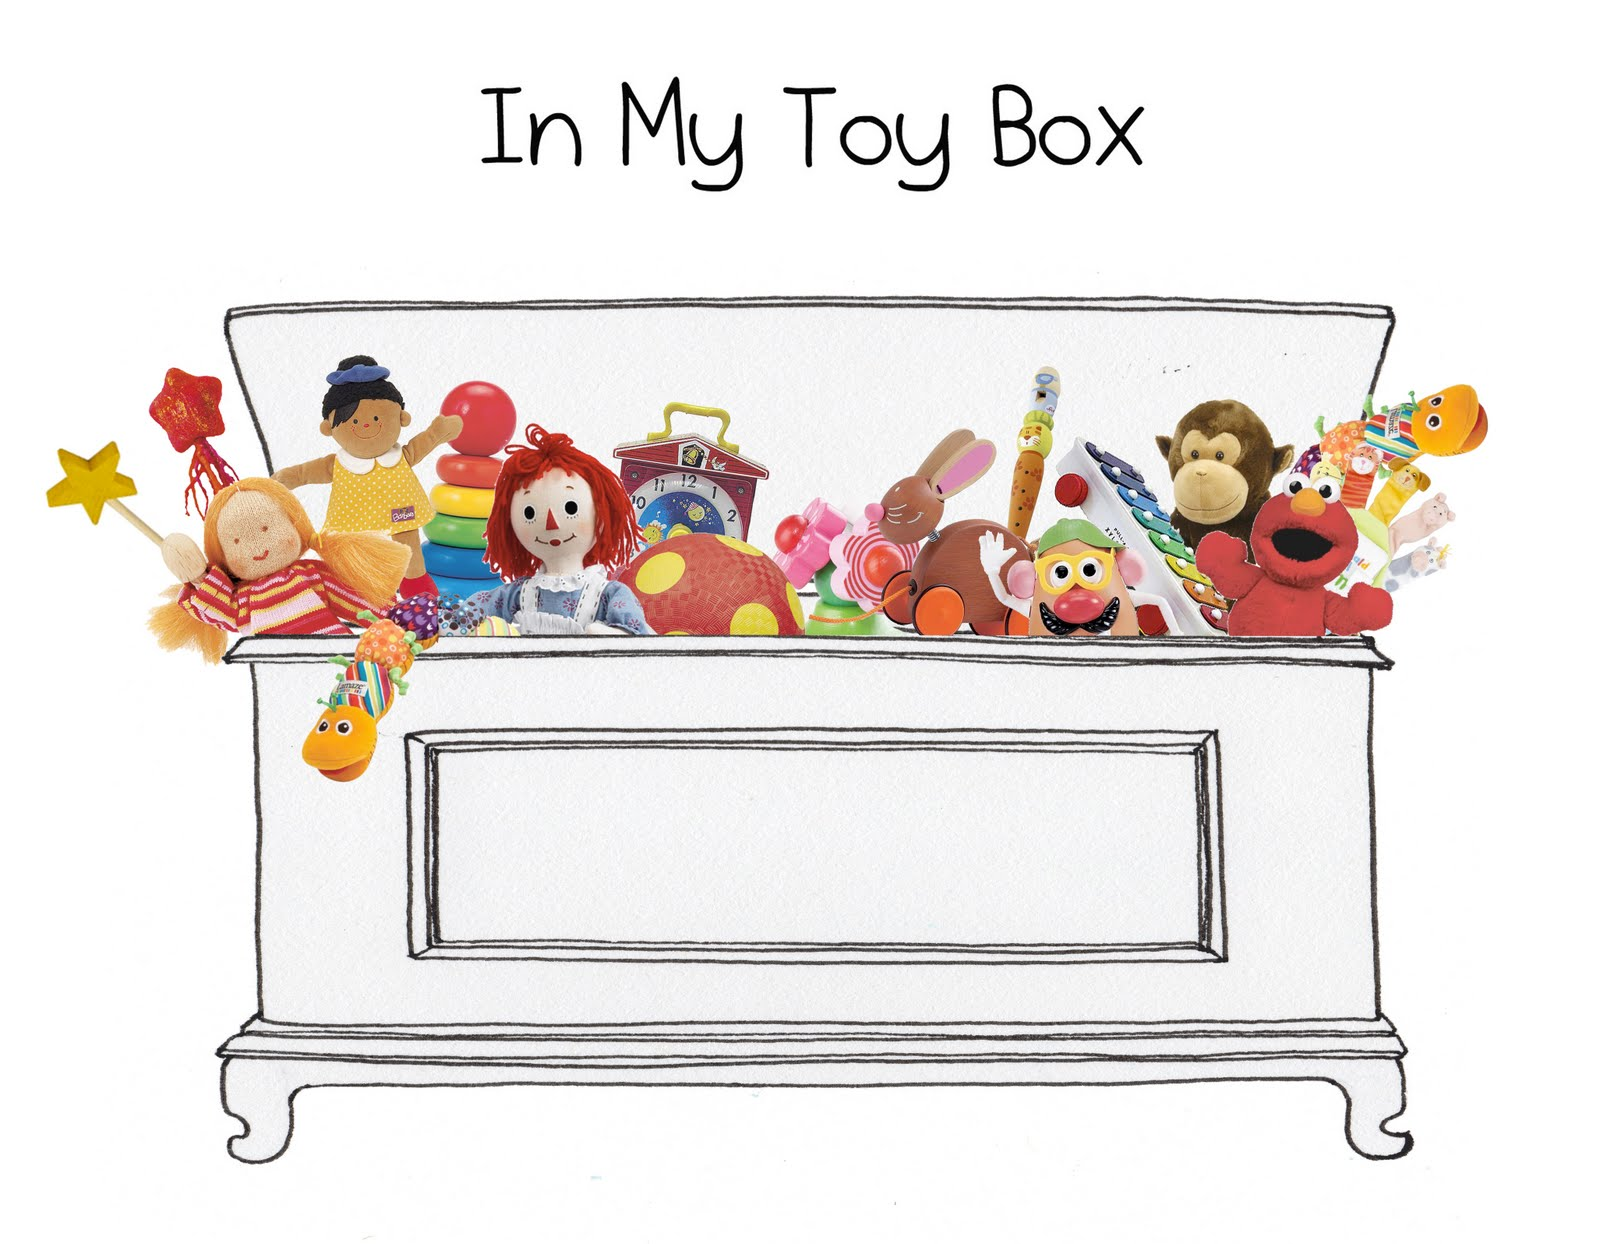 My toy box coupons